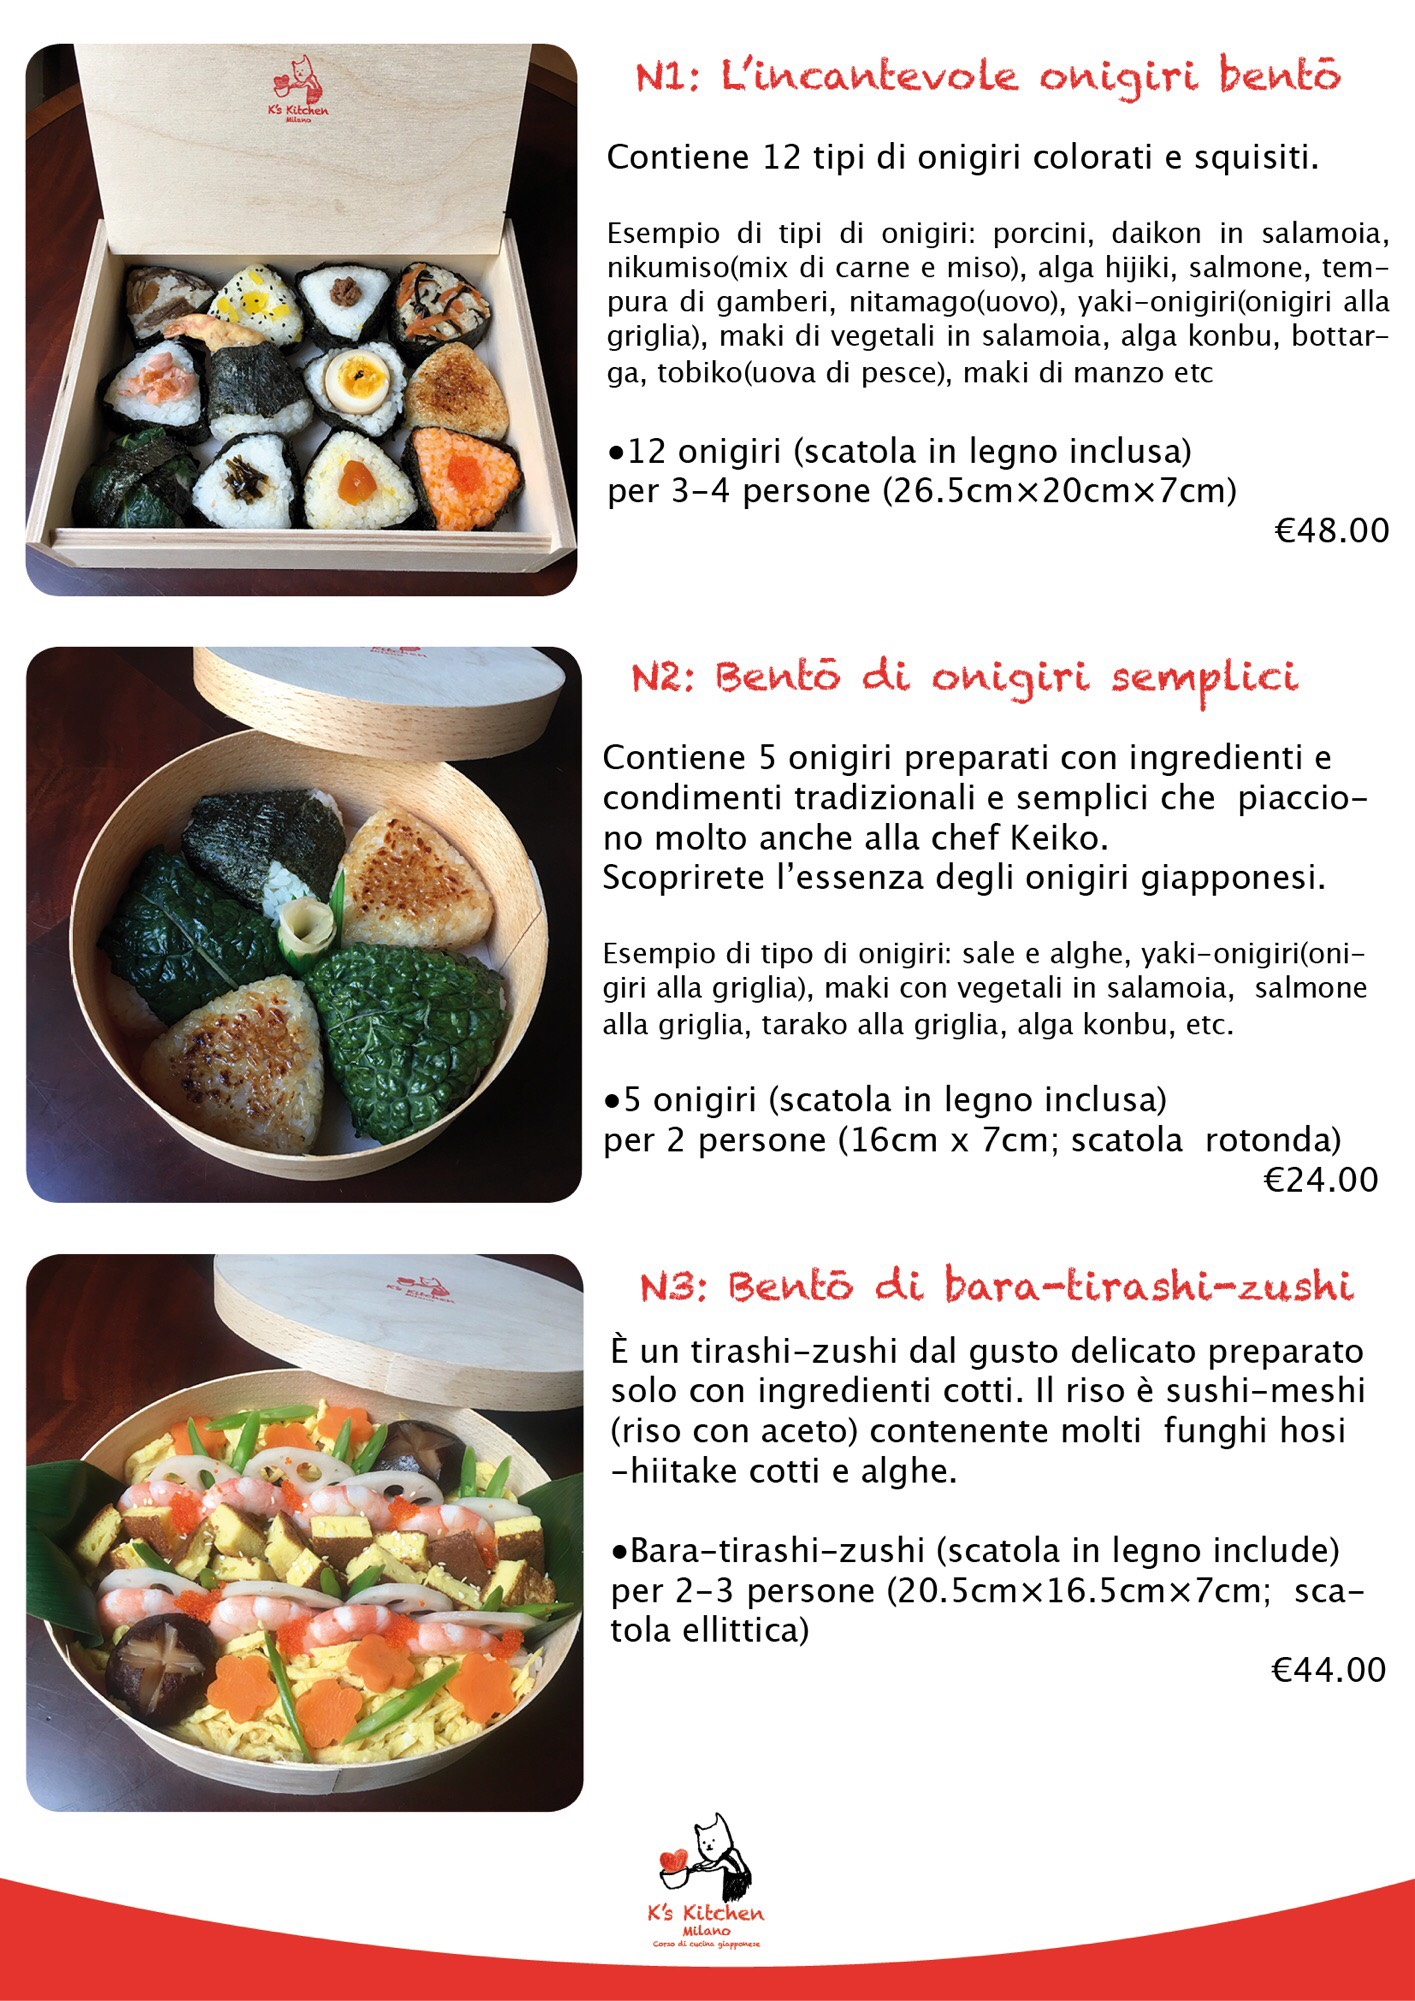 Cucina Giapponese Pesce Cotto Img 6566 Giappone In Italia